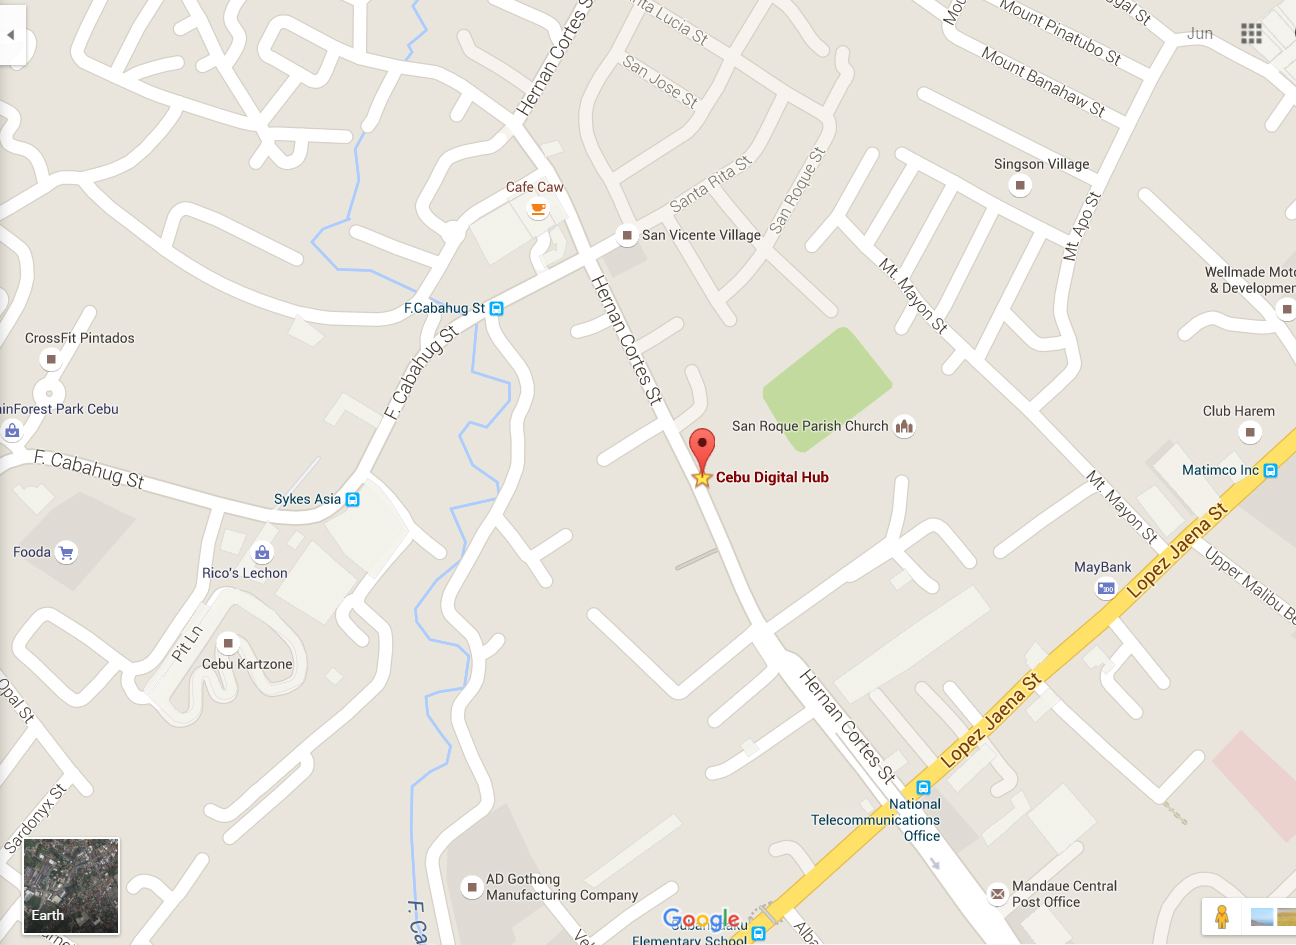 cebu digital hub location